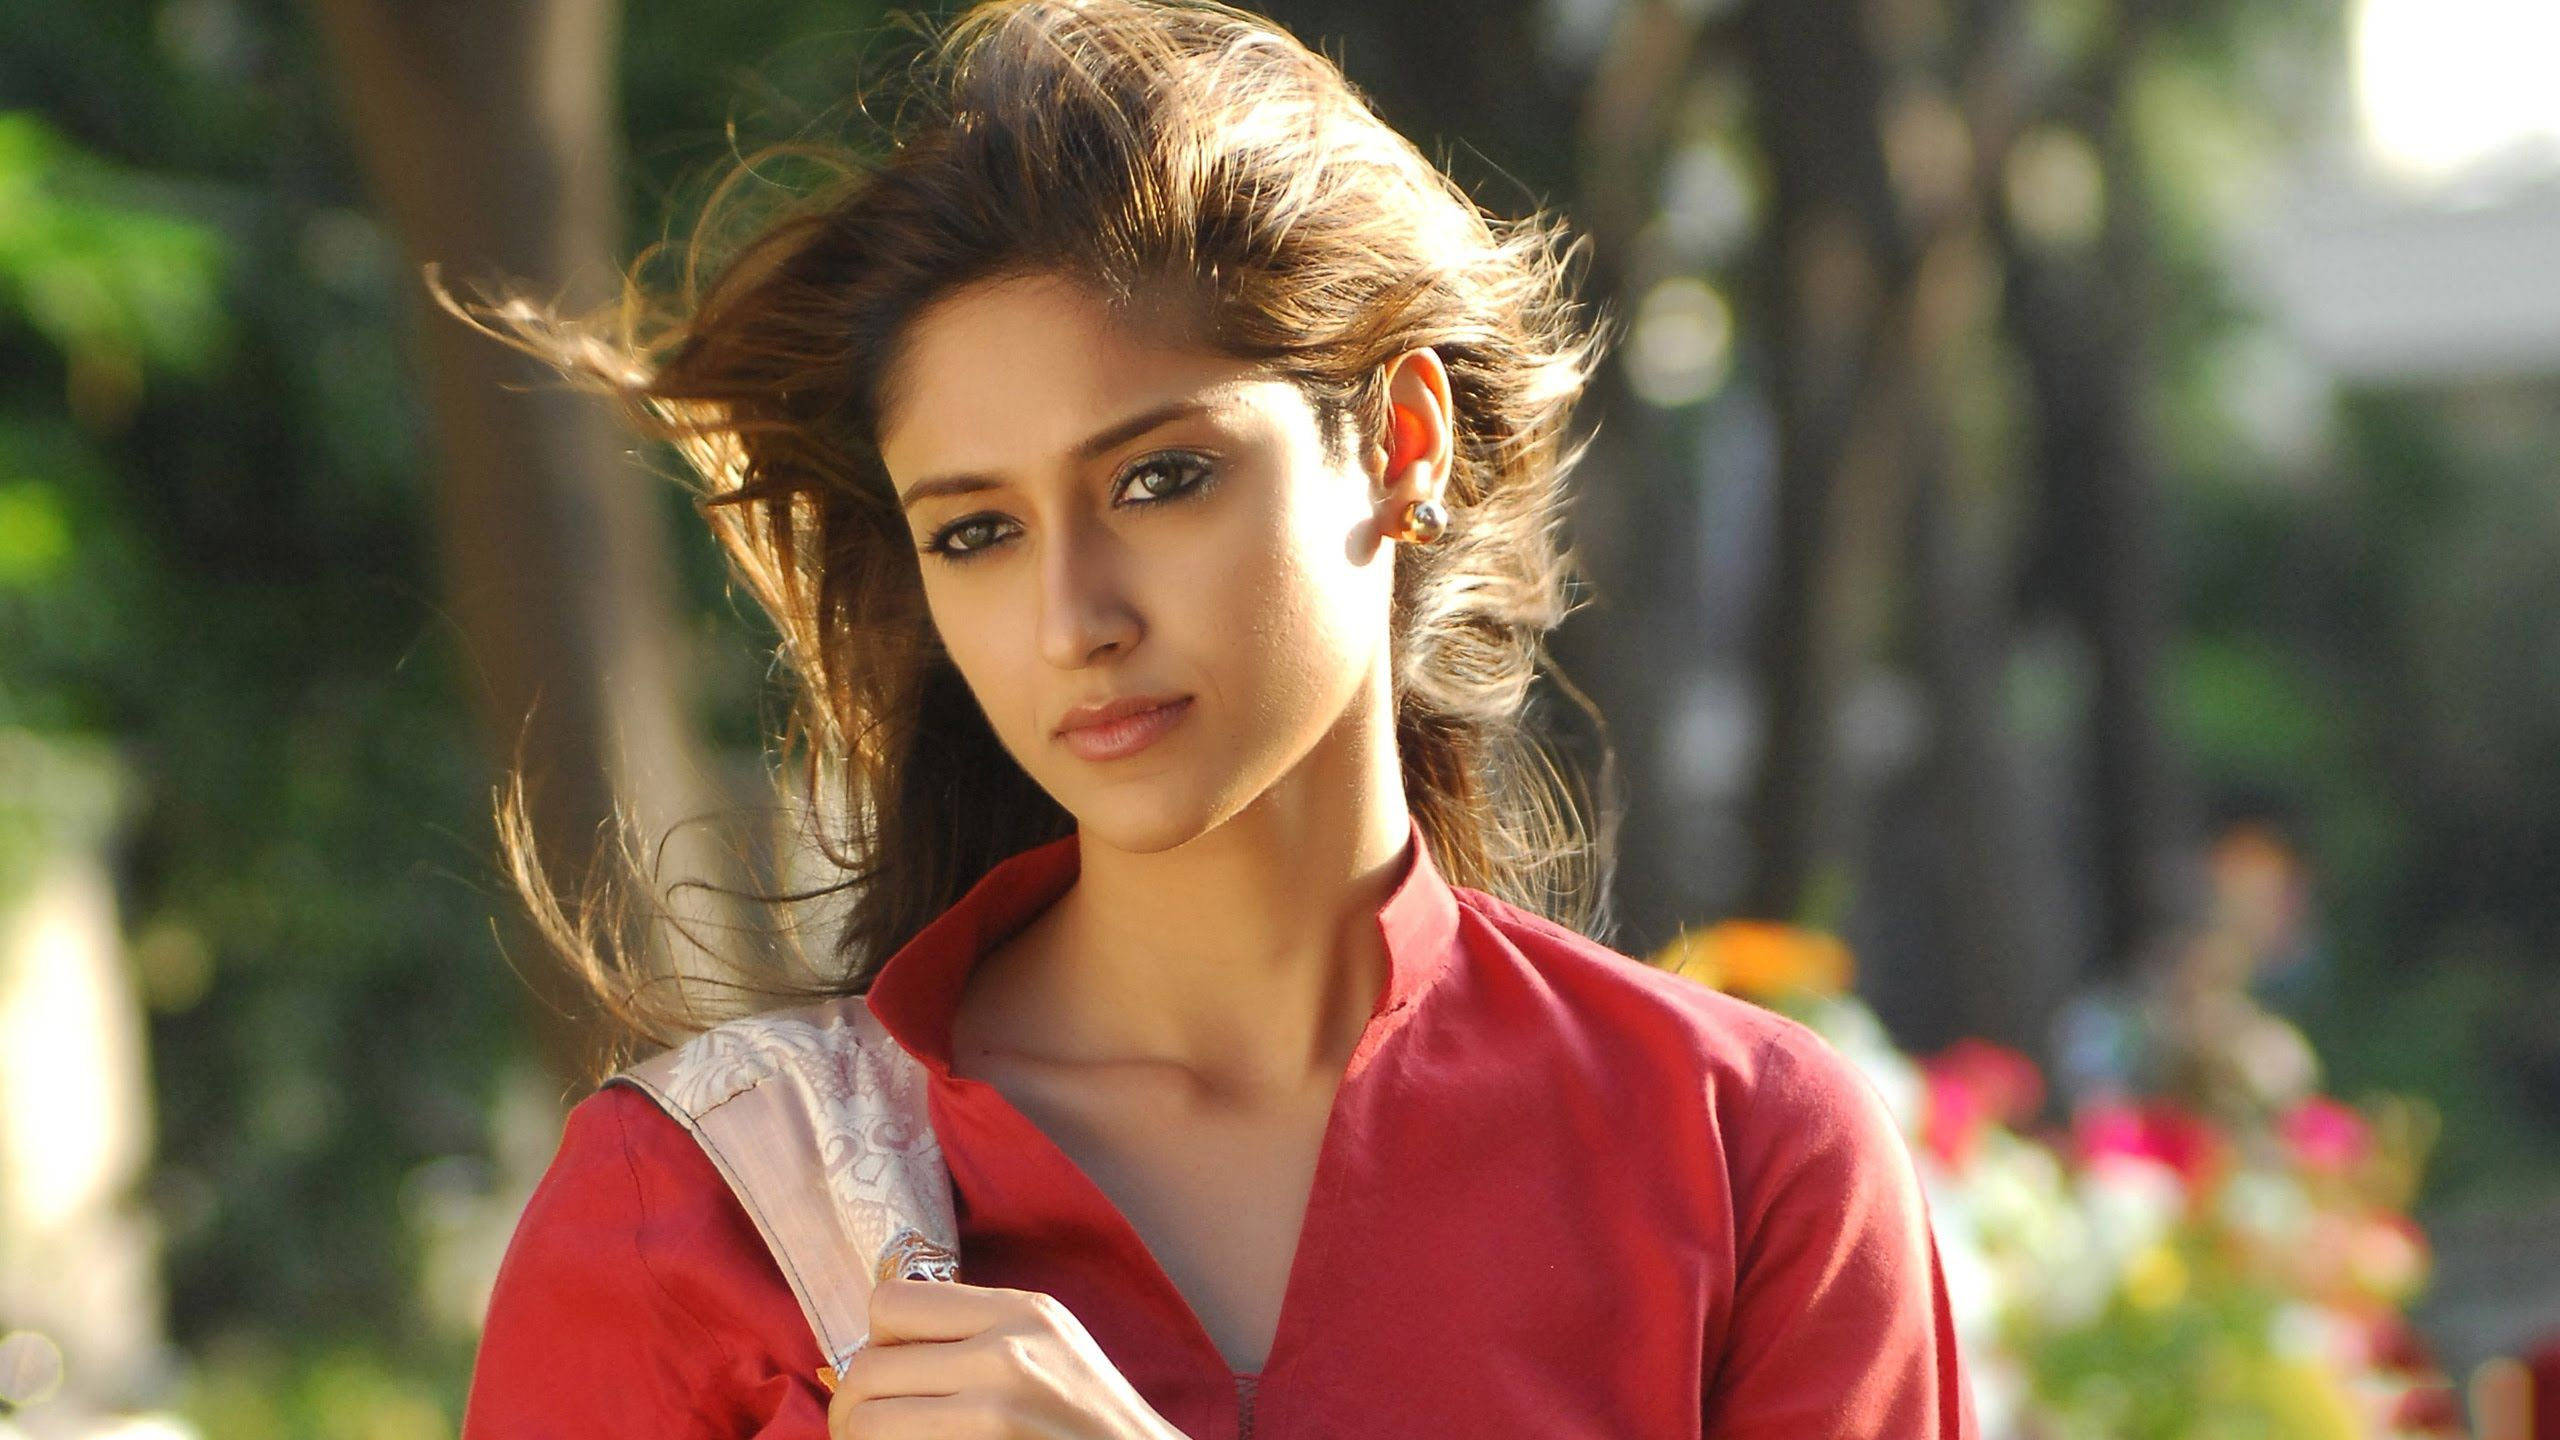 List of actresses predominantly in Hindi films List of actresses predominantly in Hindi films new pictures